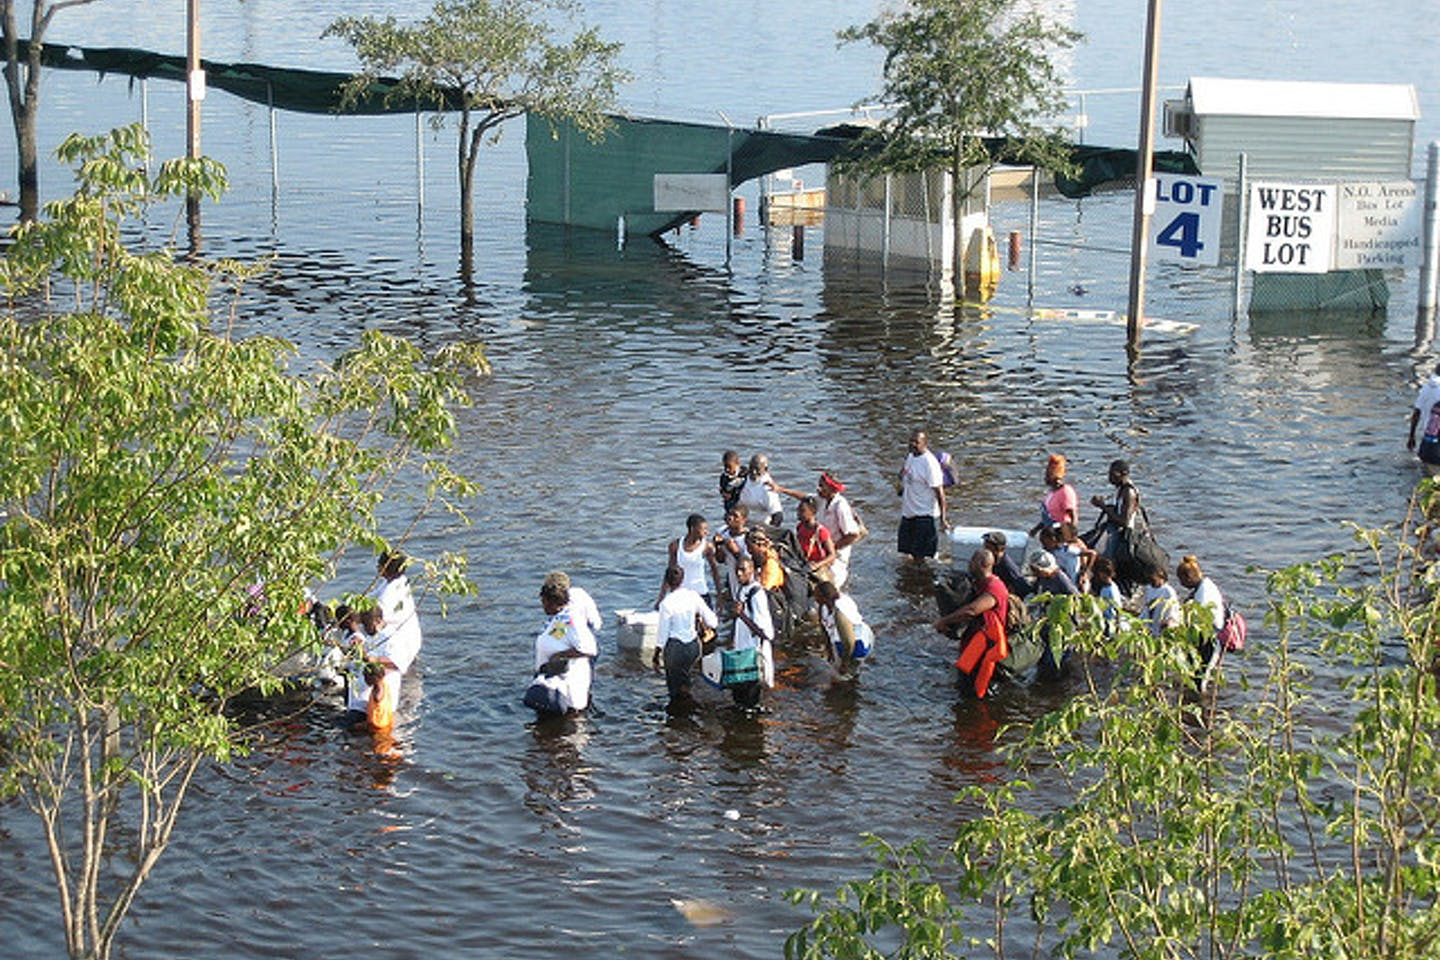 residents flee Katrina floods